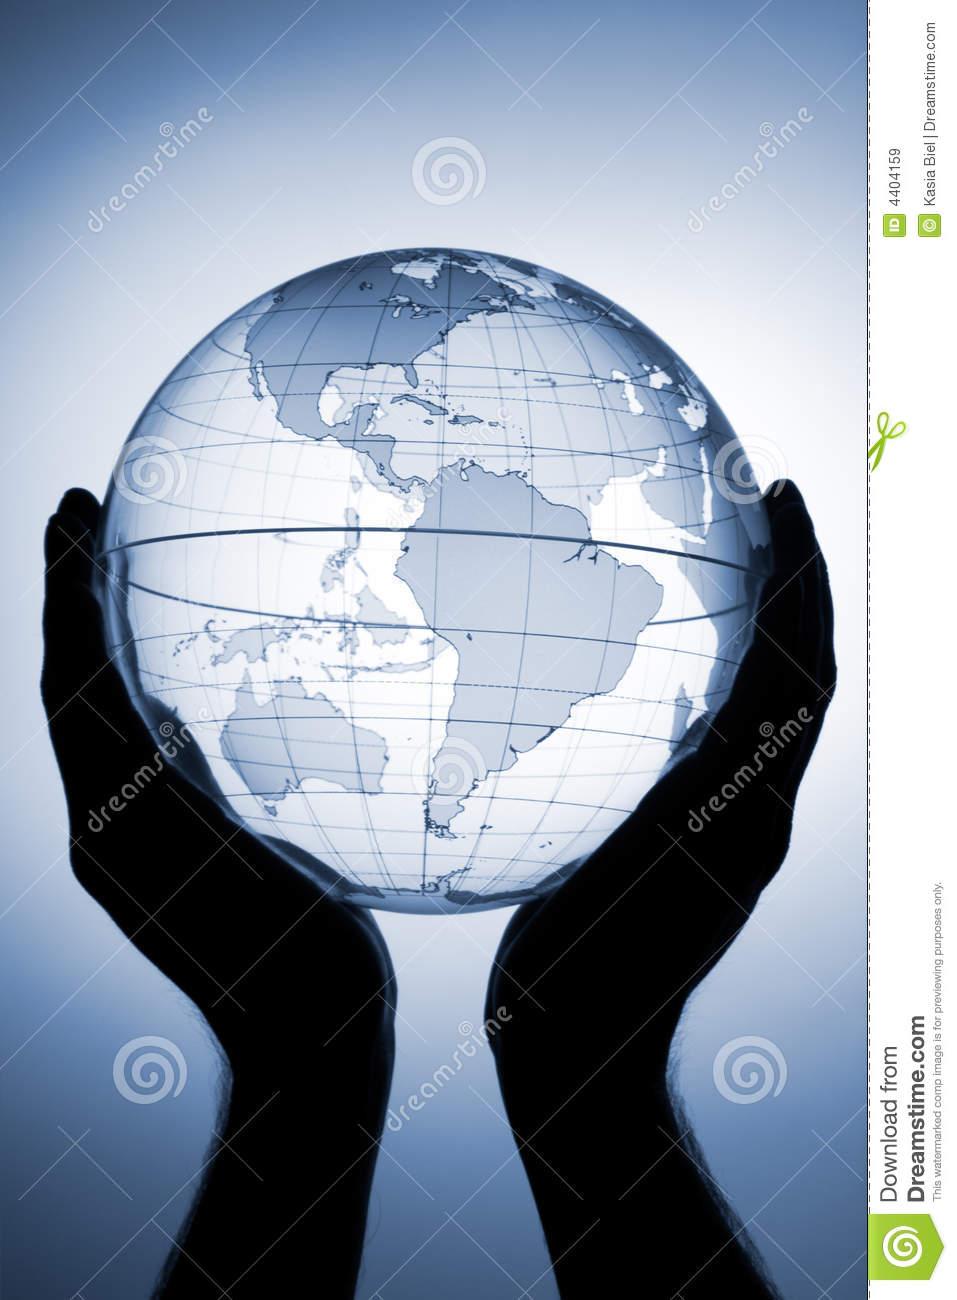 Stock Image Dreamstime Globe In Hands Royalty Free Stock Images Image 4404159